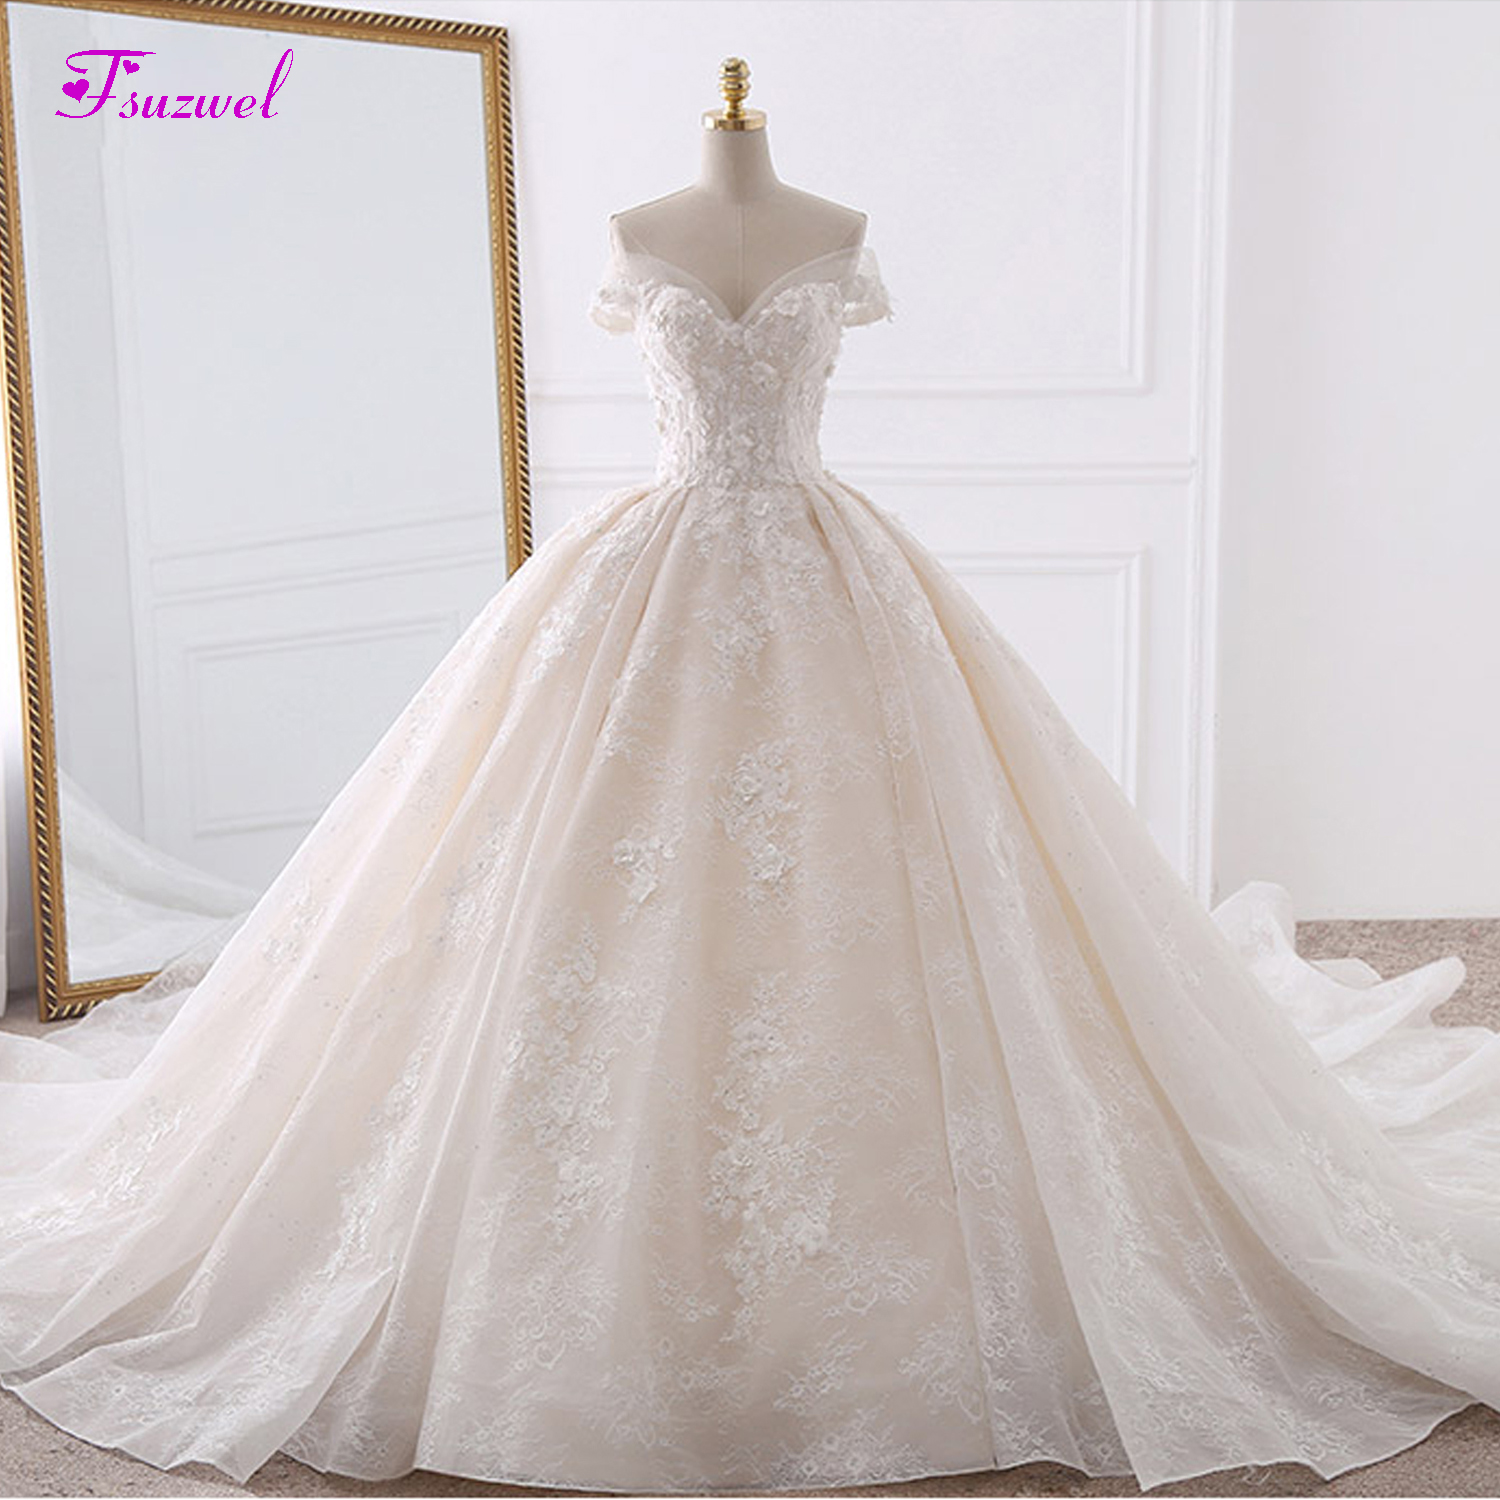 4c0c0e0281 best top royal train sweetheart wedding dress ideas and get free ...